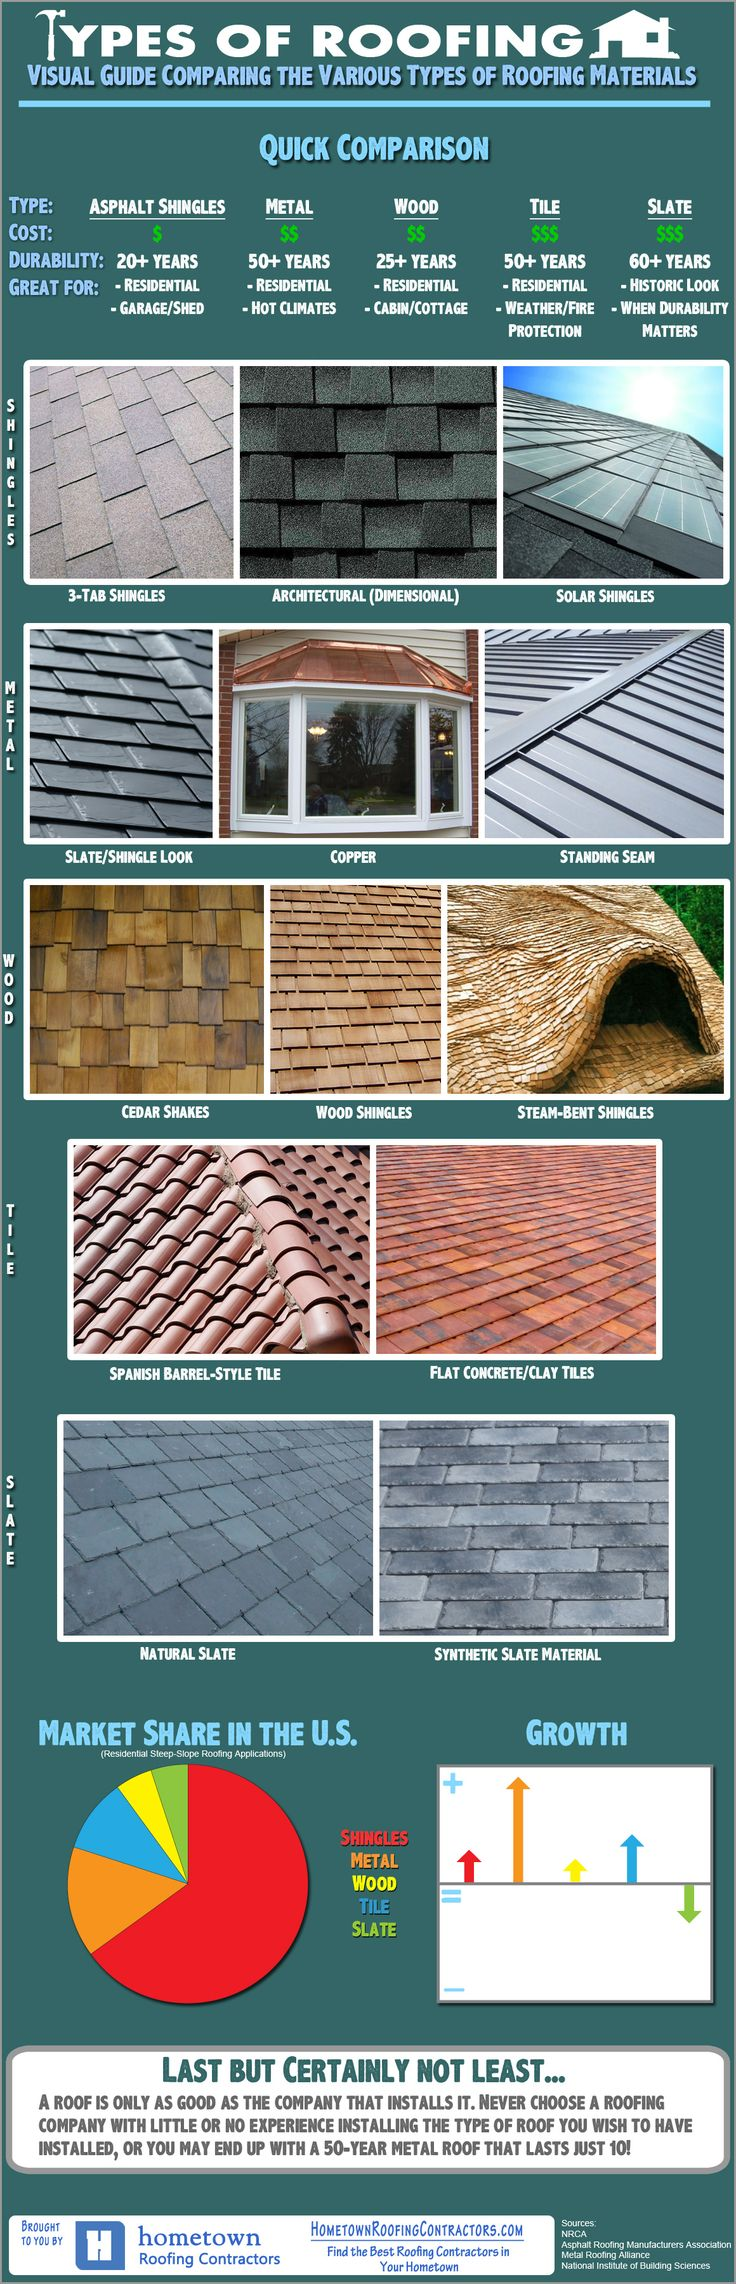 interesting insight into materials, benefits, and costs of different types of roofing materials!